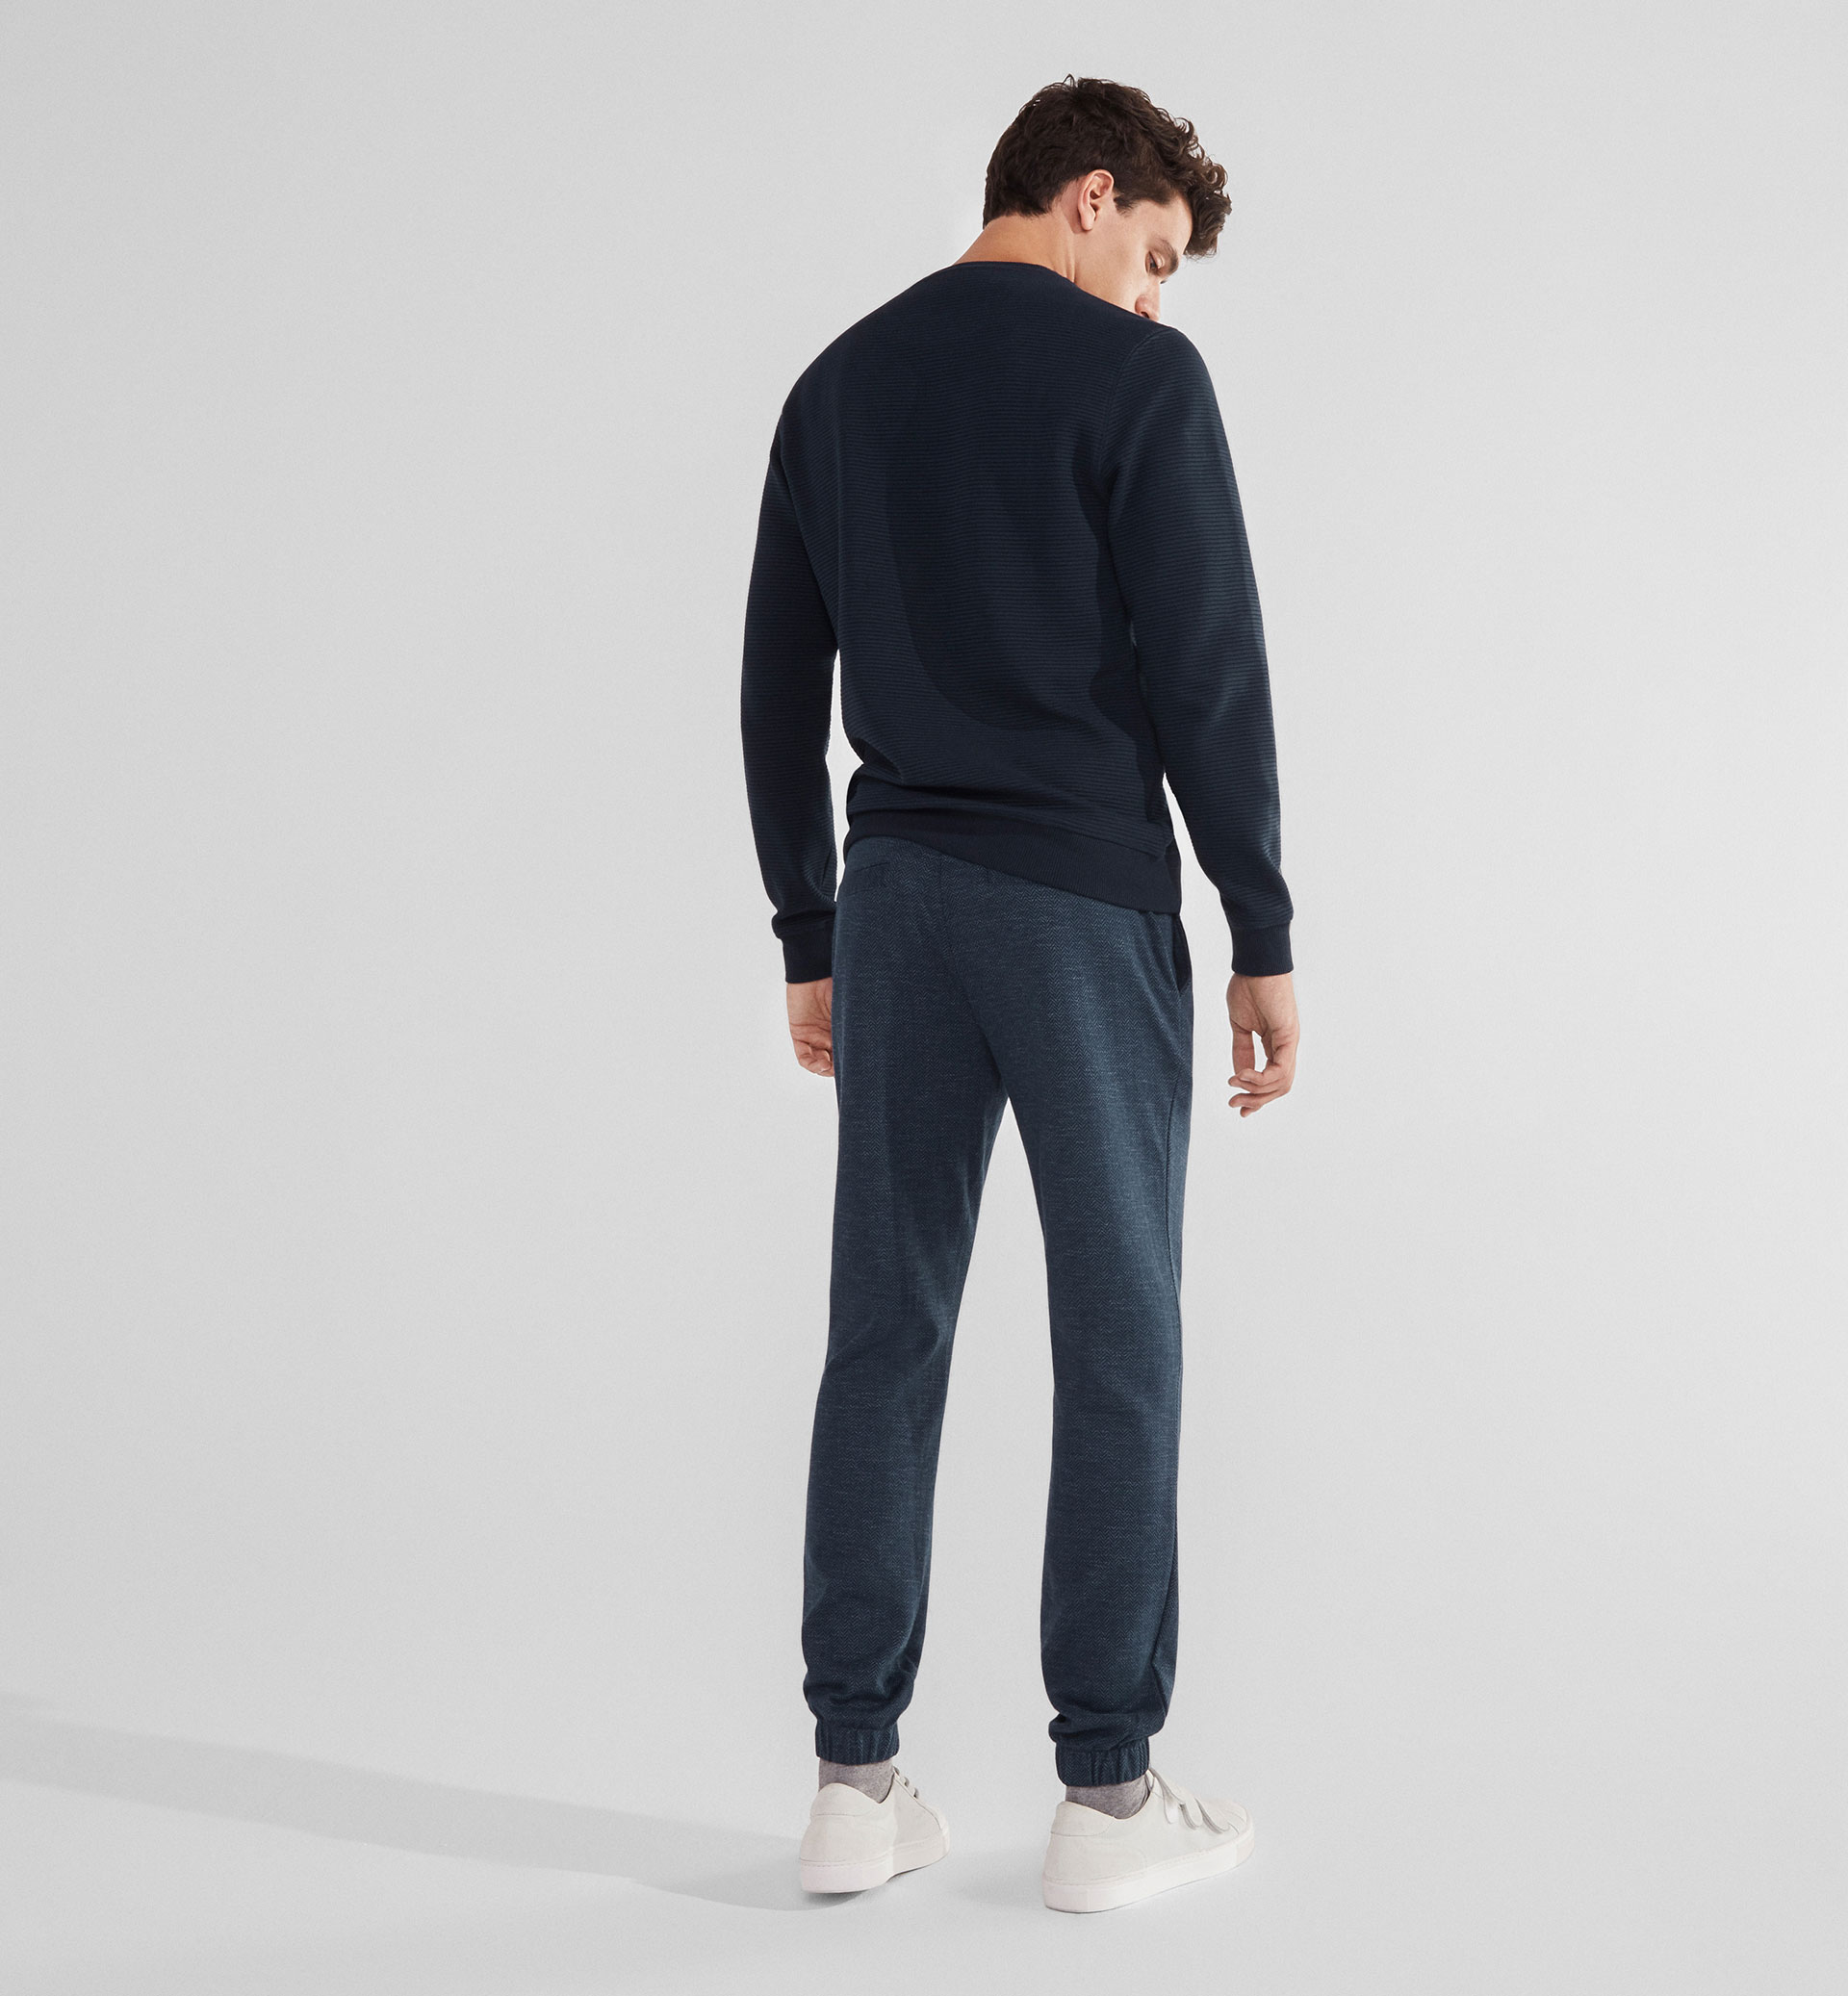 SOFT HERRINGBONE JOGGING TROUSERS